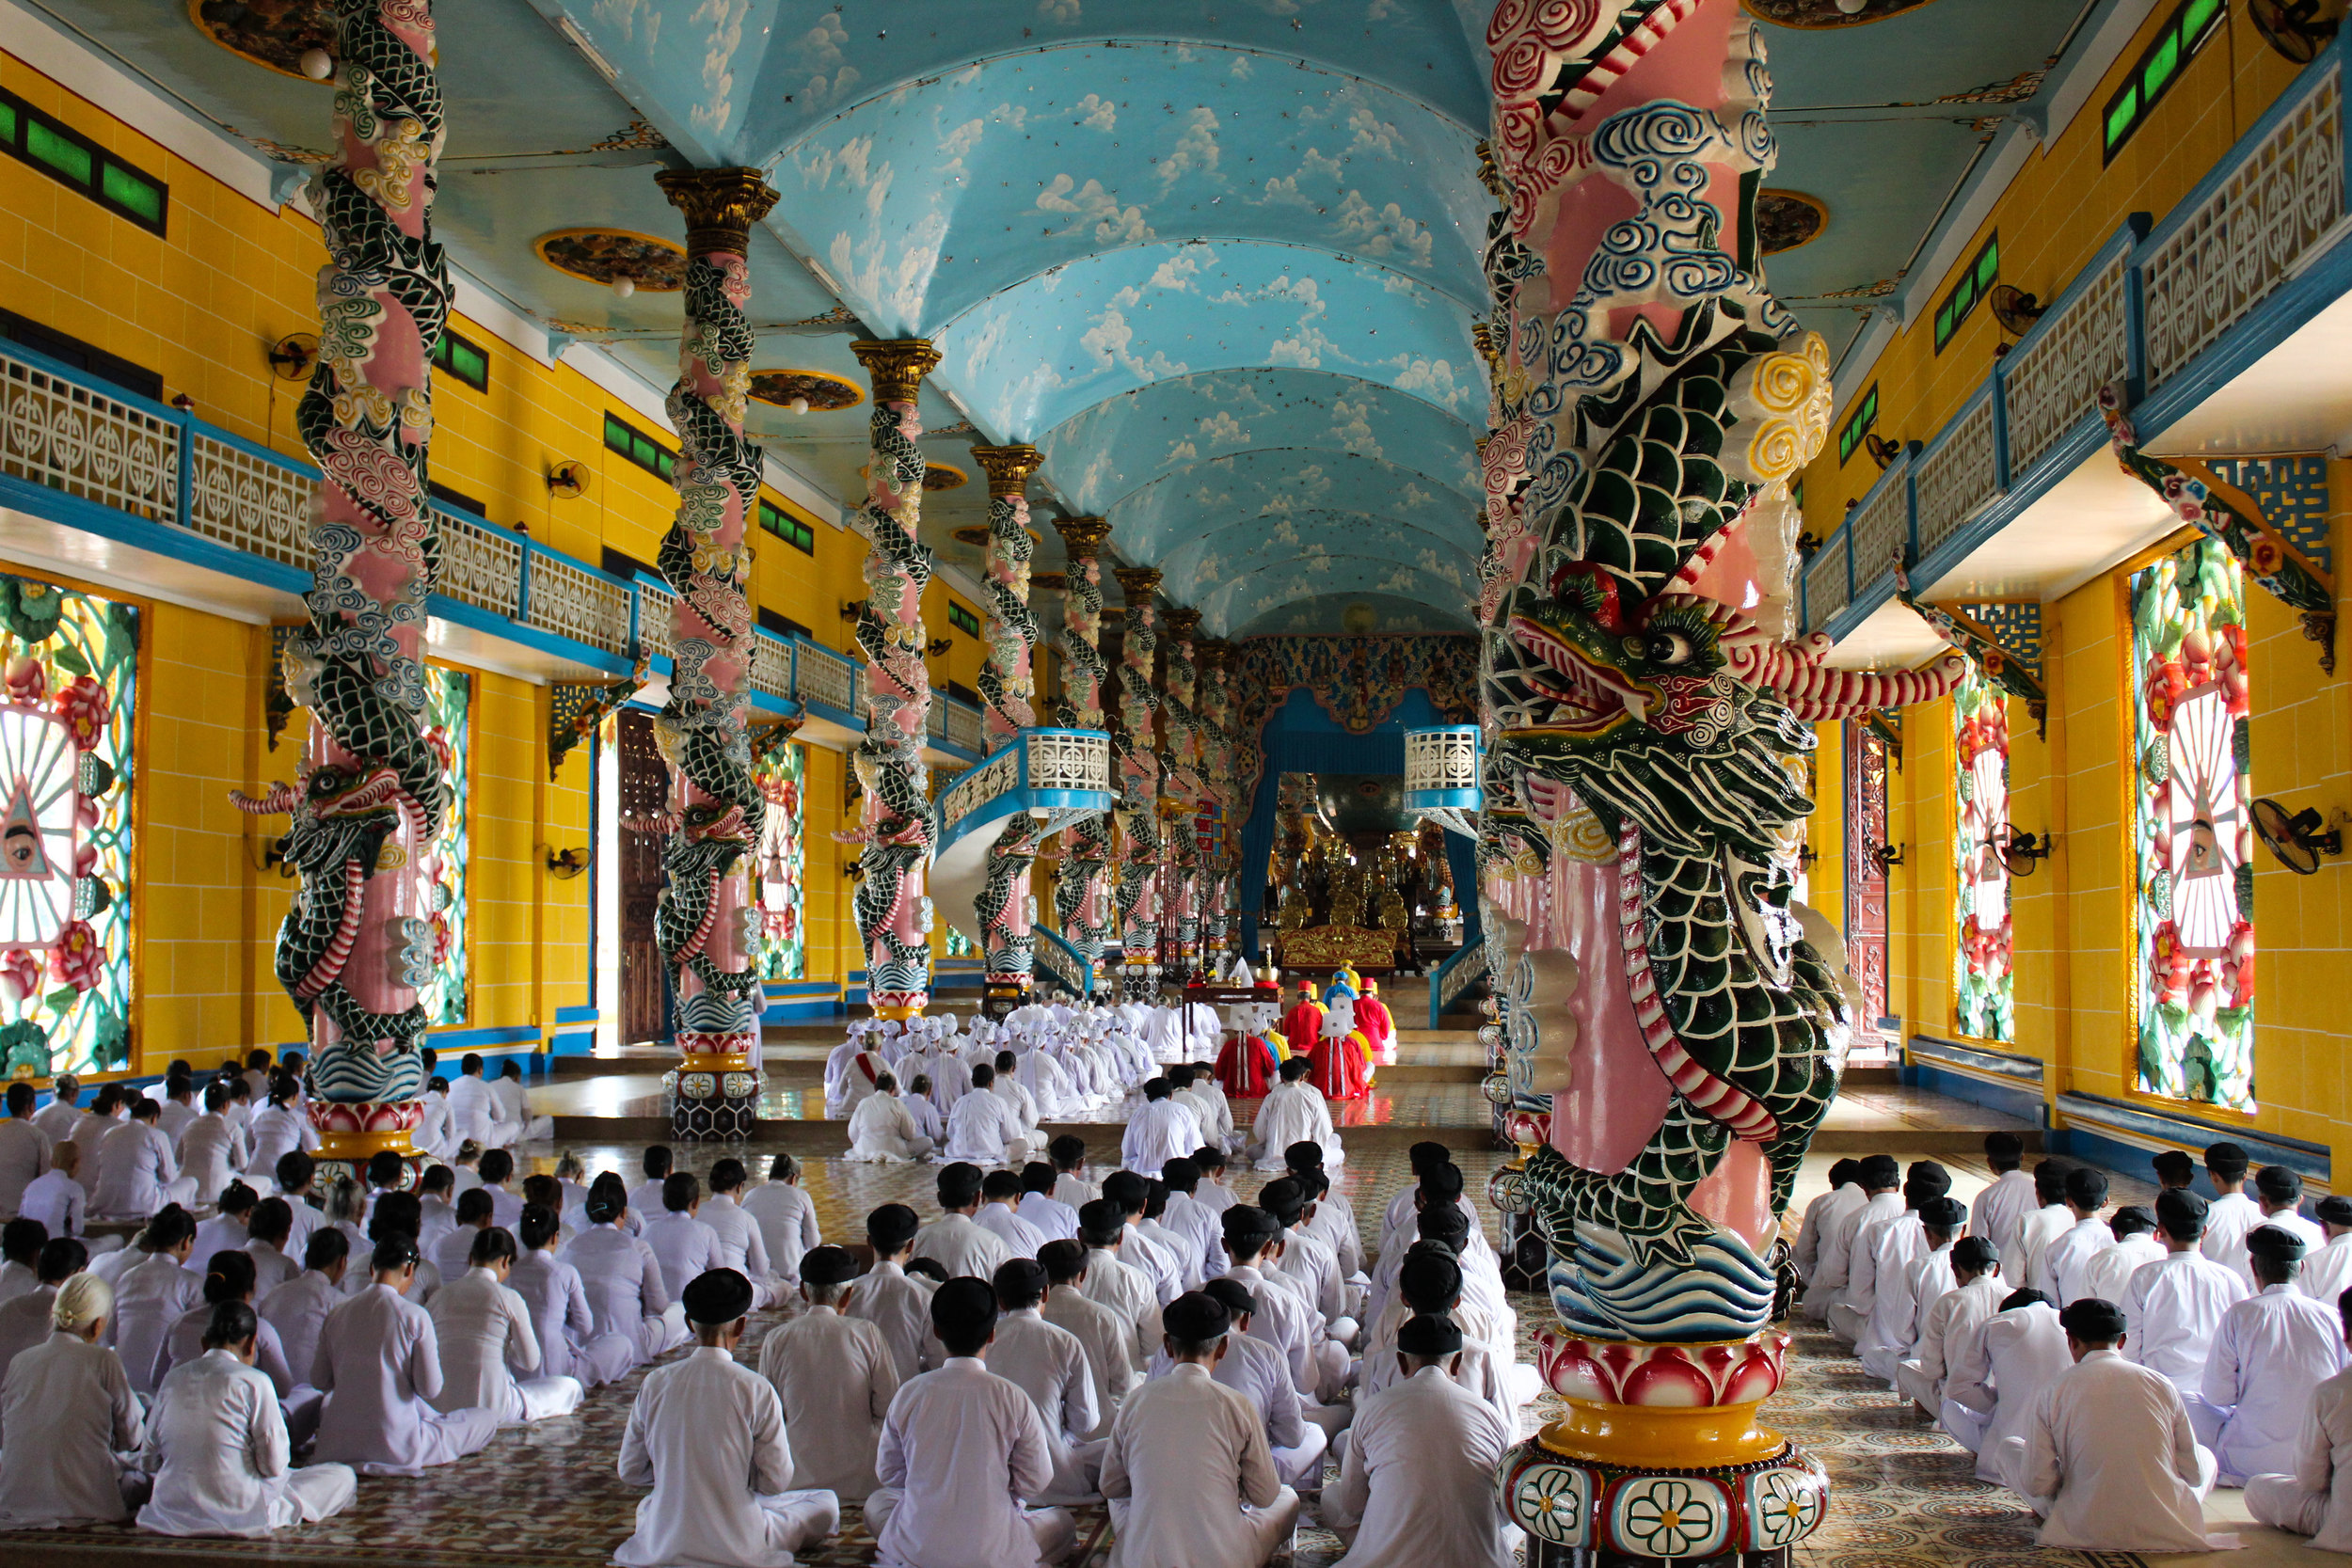 The Cao Dai temple is one of the most beautiful building I have probably ever been in